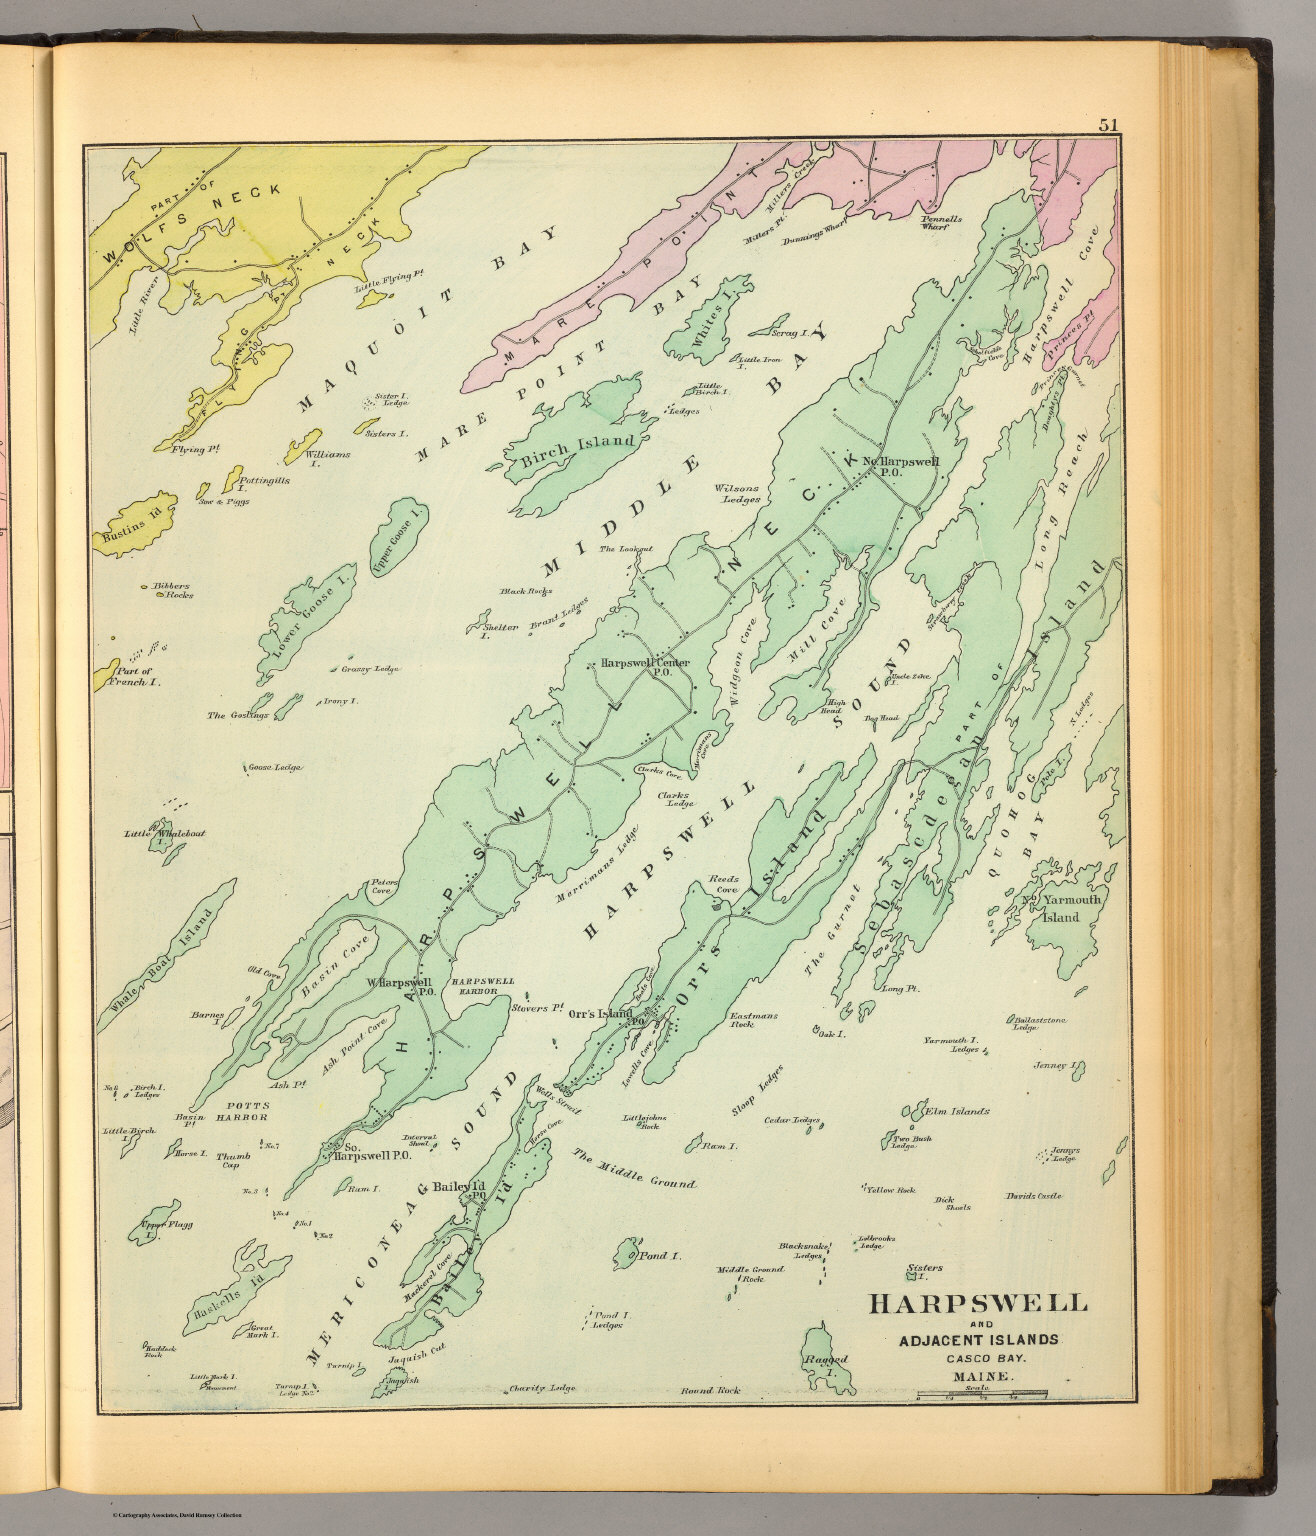 Harpswell, adjacent islands.   David Rumsey Historical Map Collection